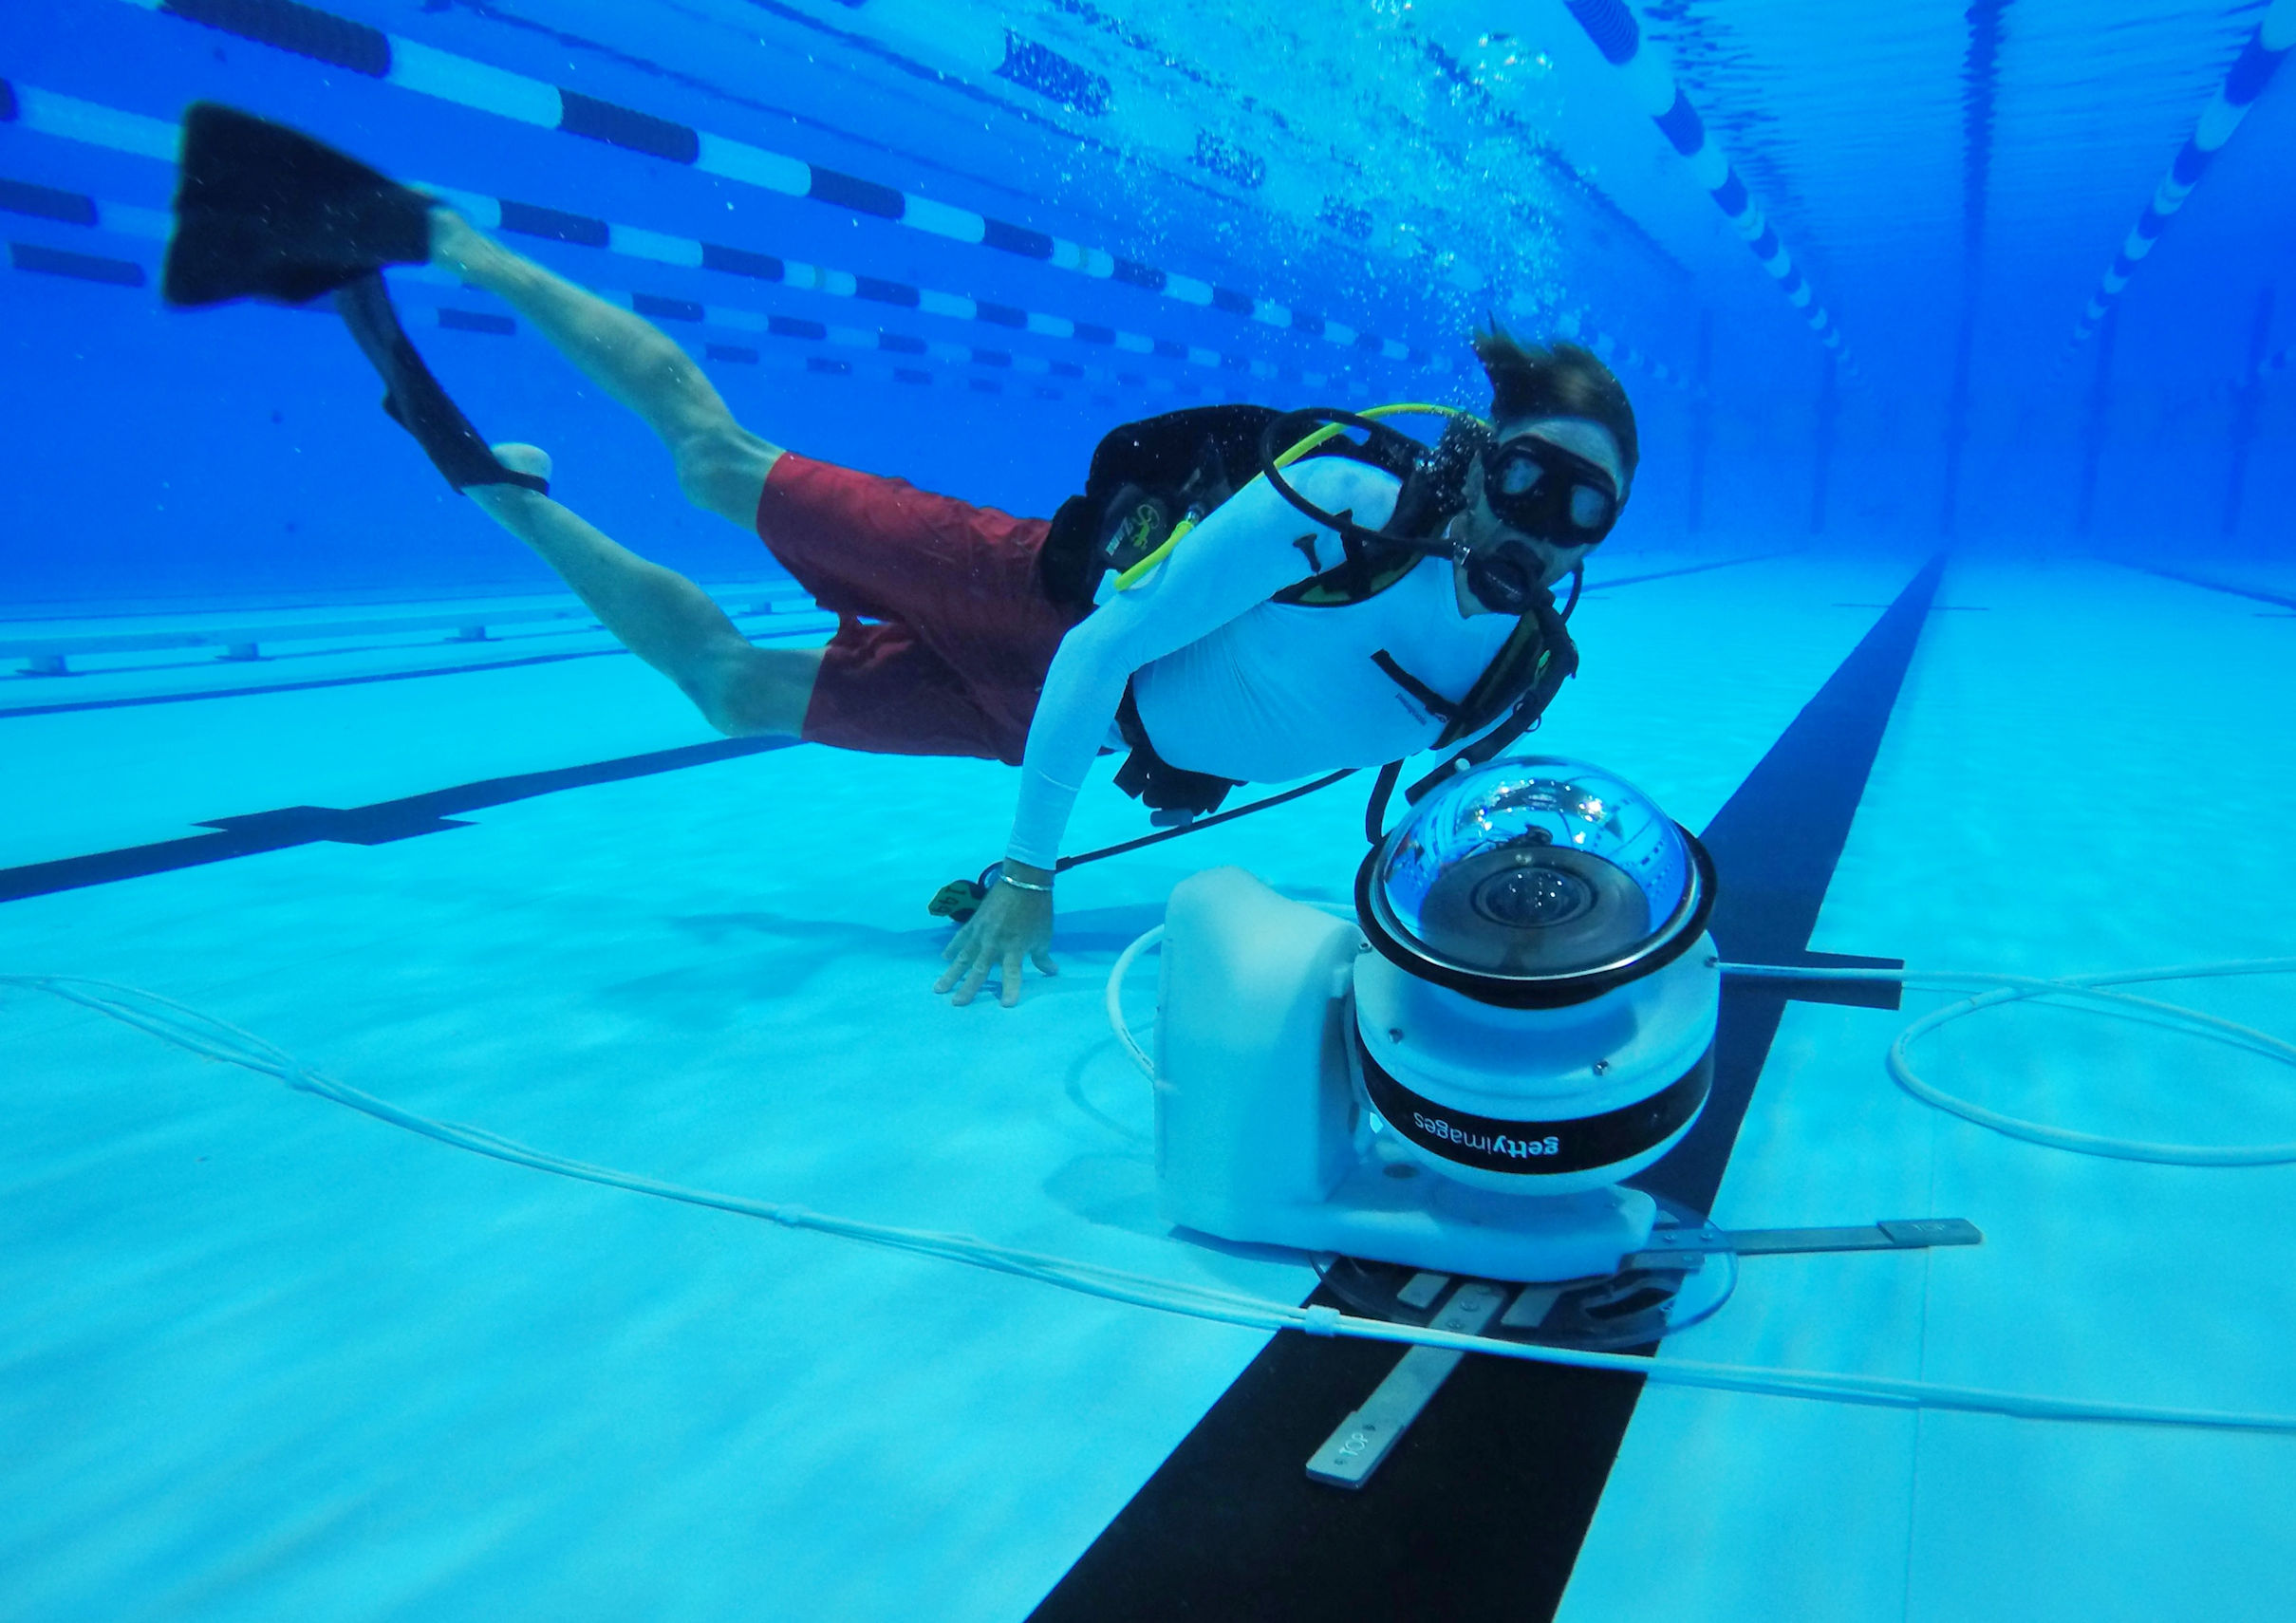 gettys robotic underwater camera lets photographers track the action courtesy of getty images